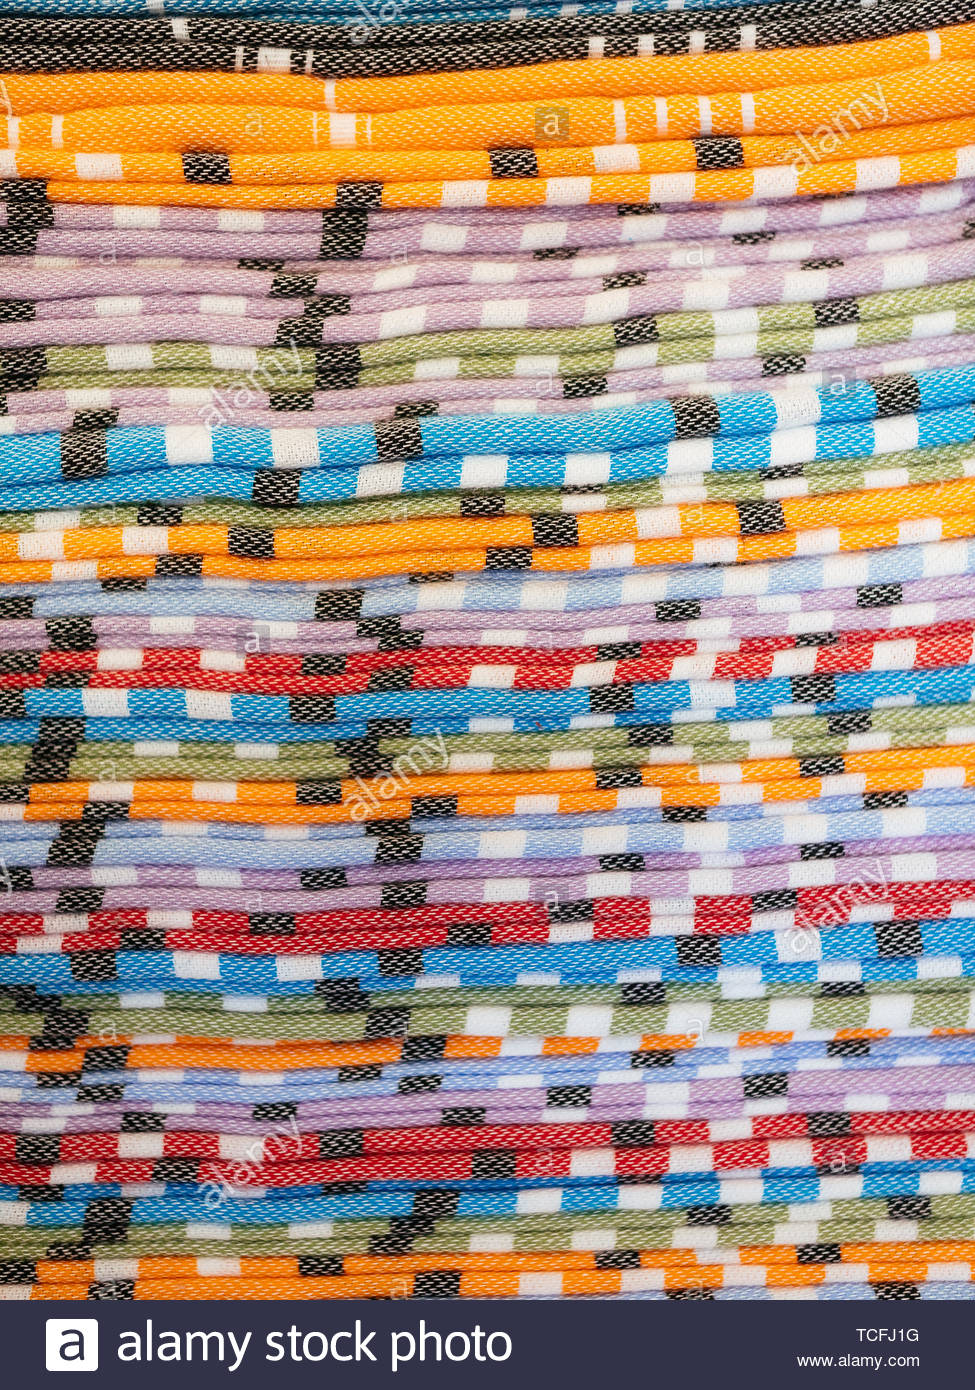 A pile of colorful traditional textiles photographed in the local handicraft market. - Stock Image